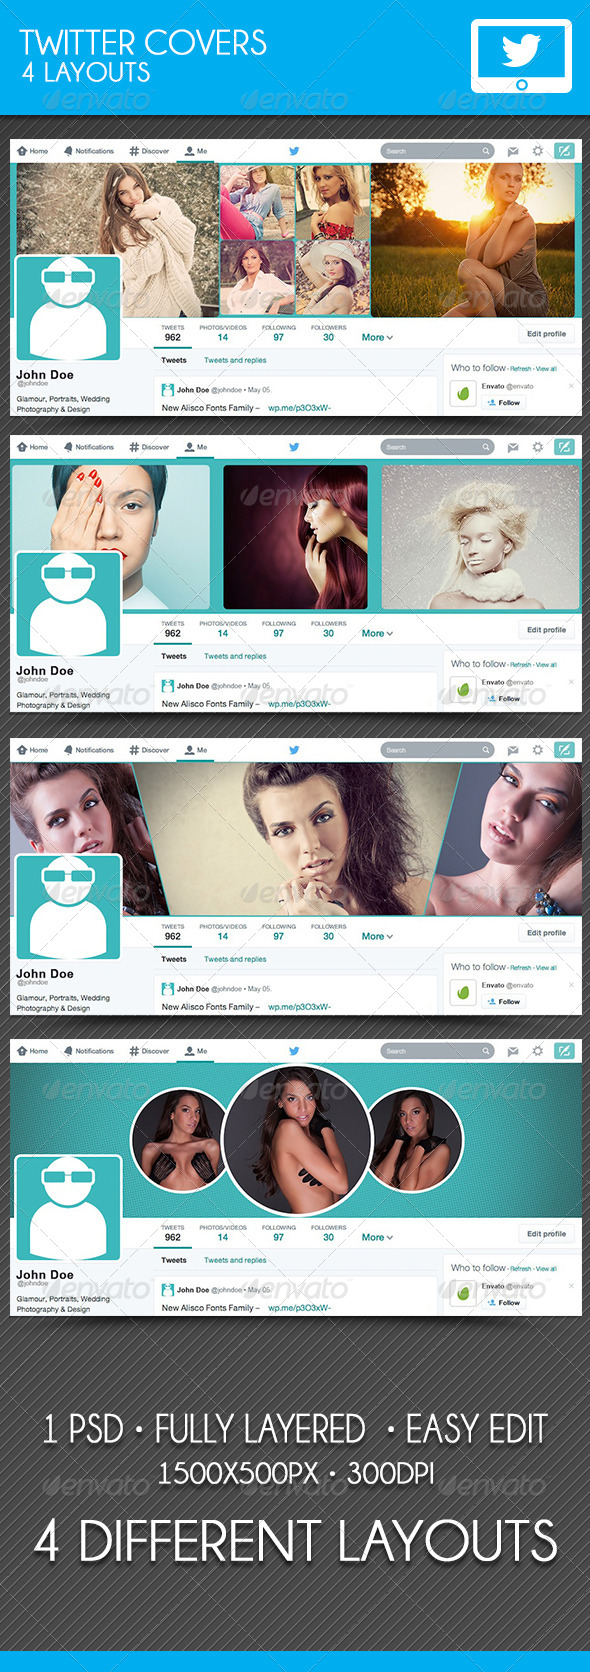 Twitter Covers